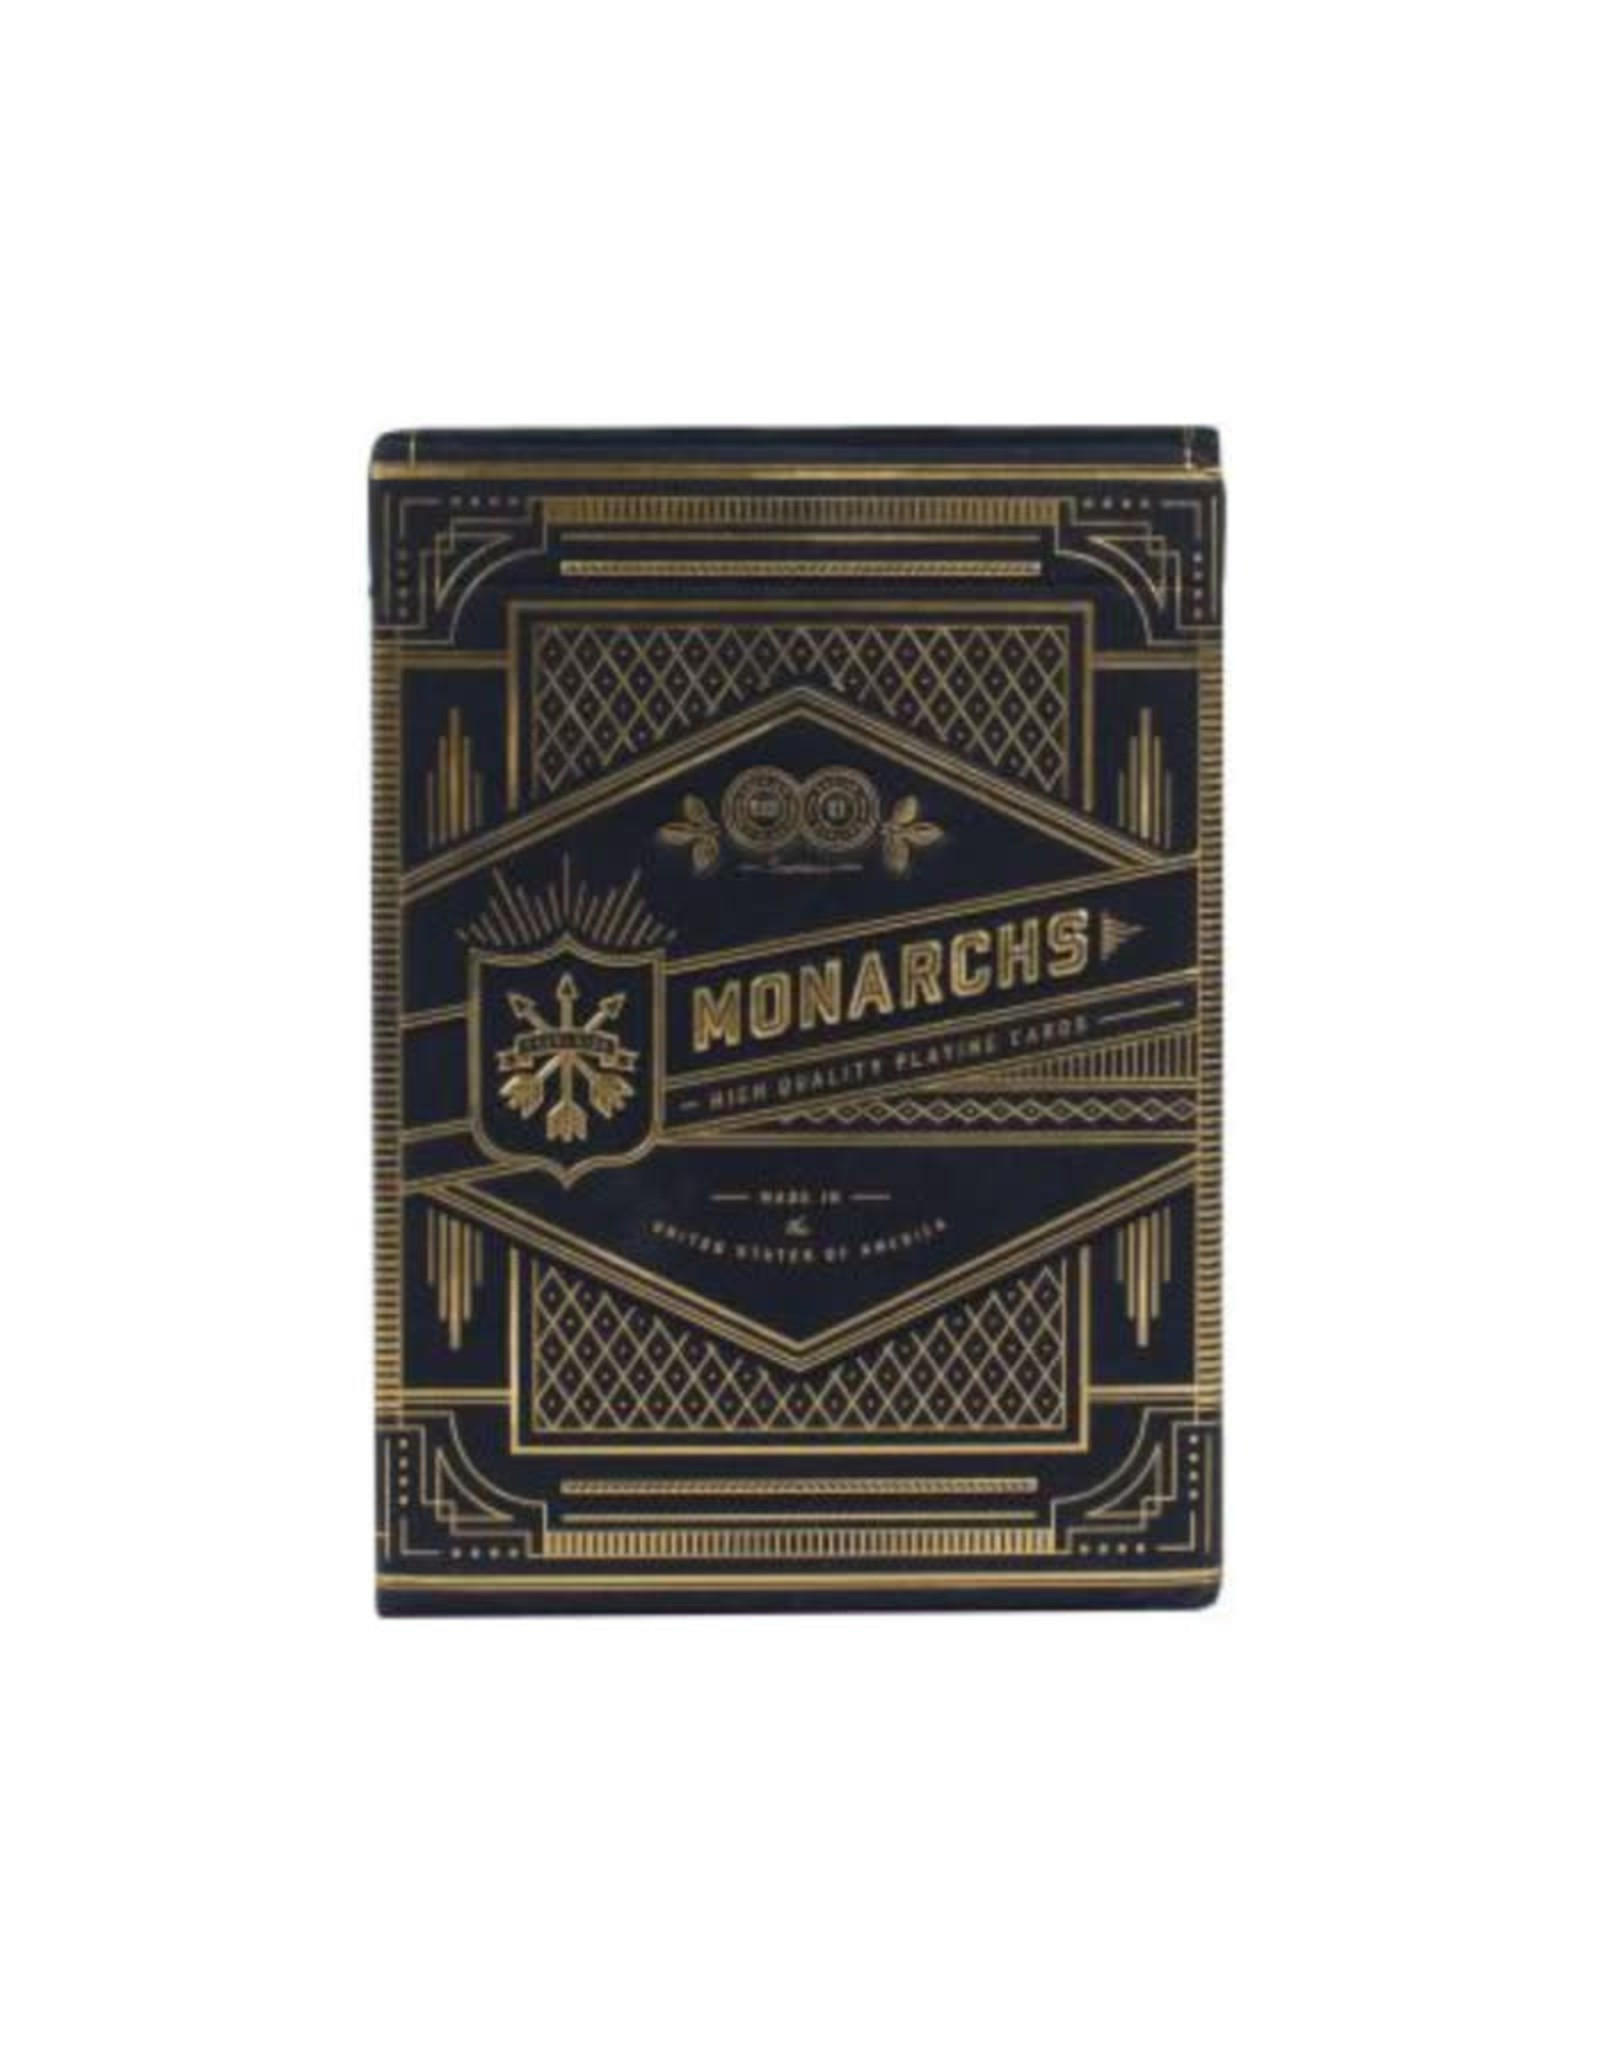 United States Playing Card Co Playing Cards: Bicycle Theory11 Monarchs